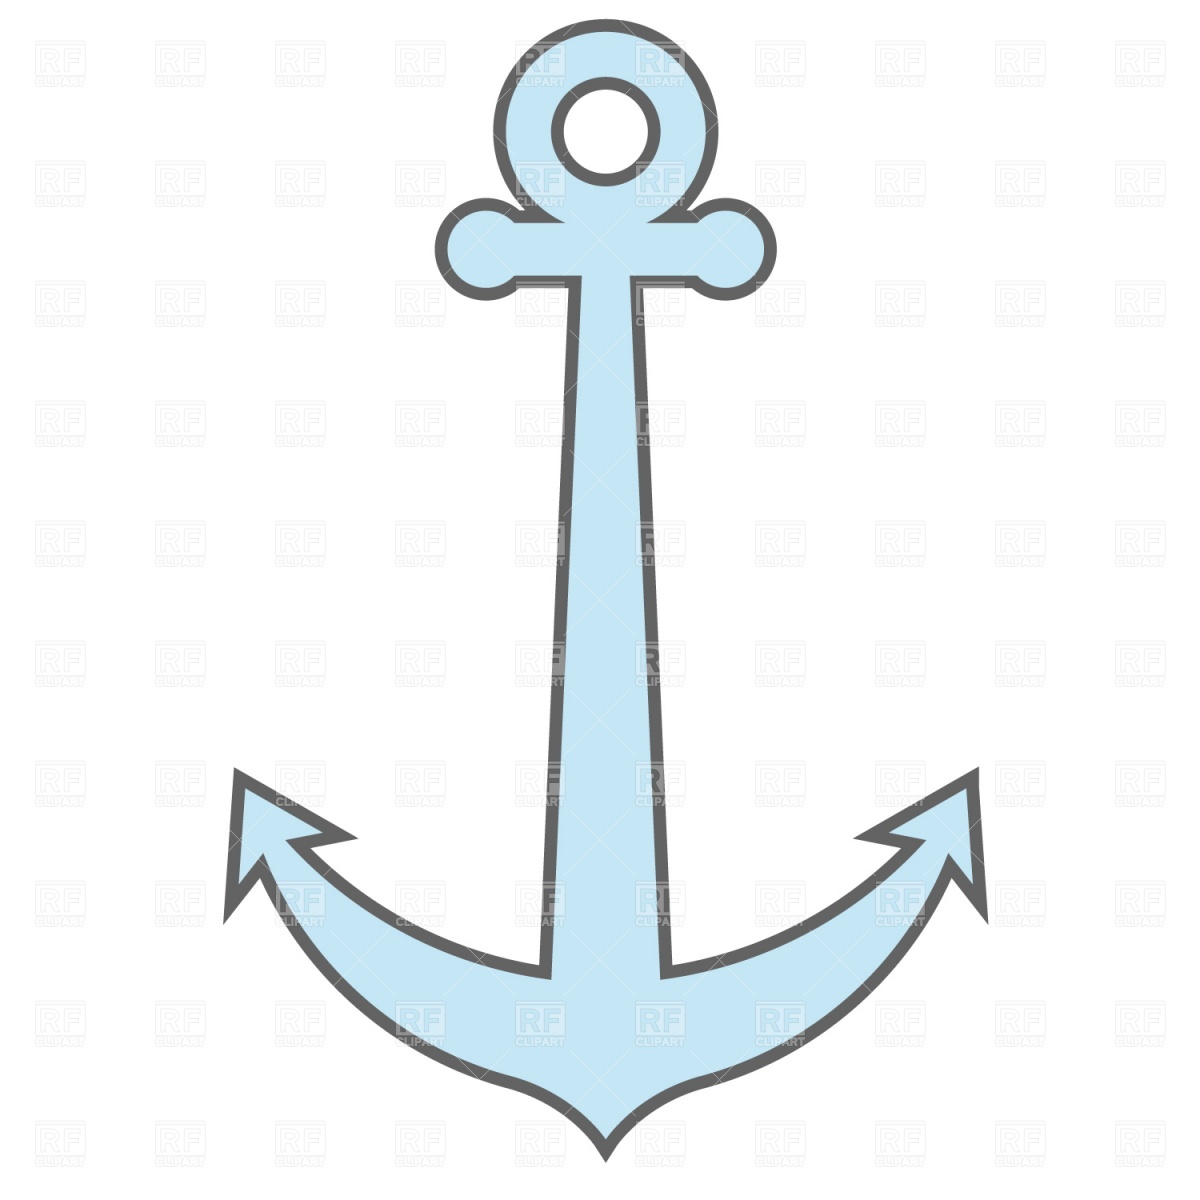 Free pictures of anchors. Anchor clipart boat anchor